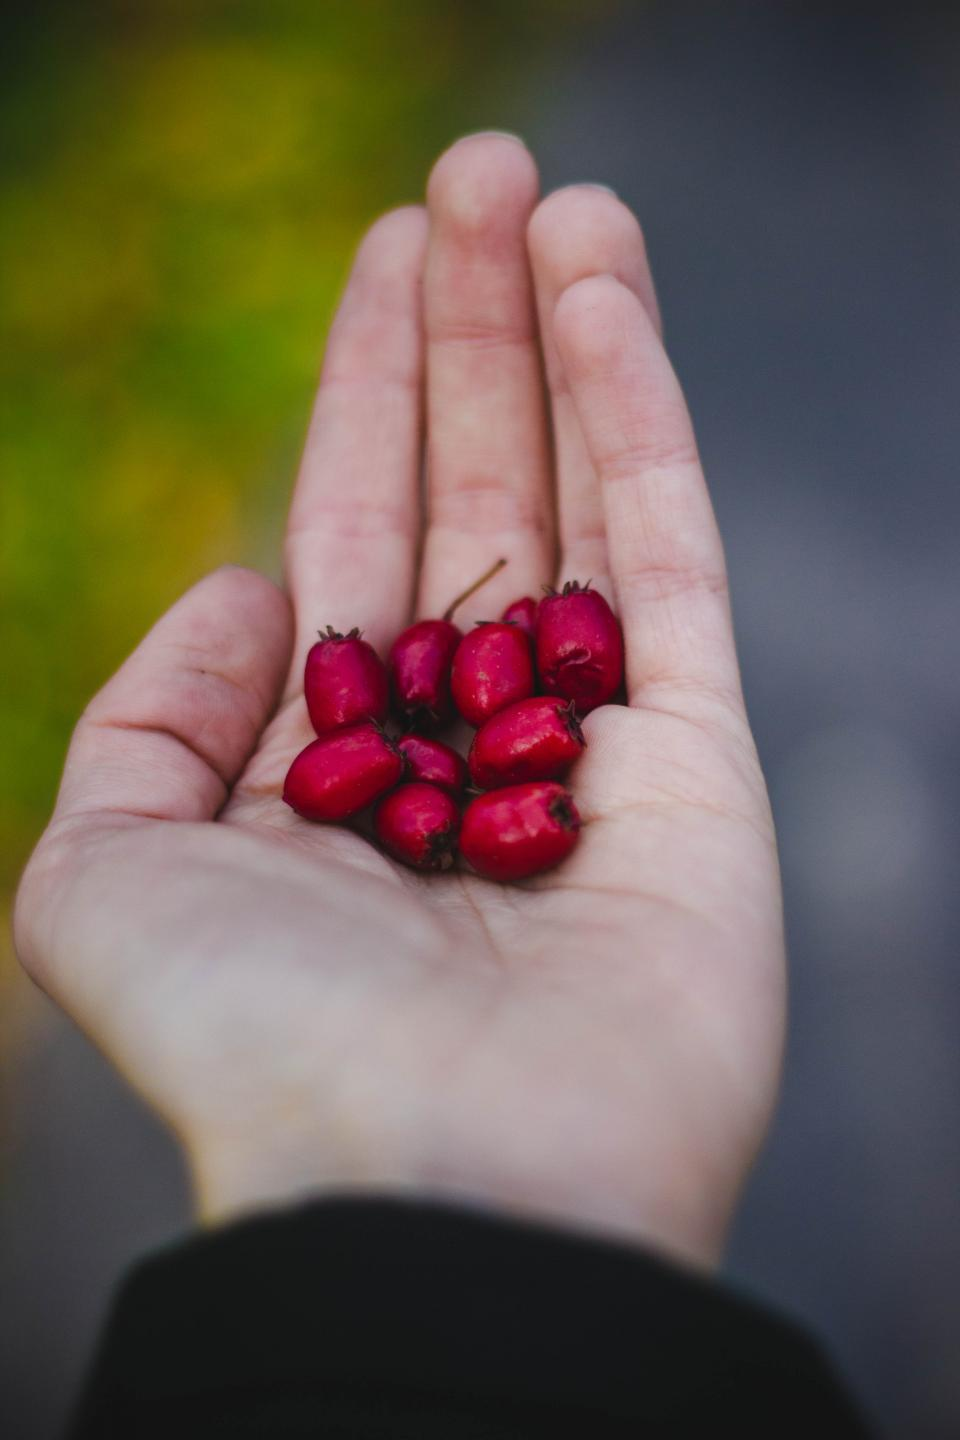 red fruit hand palm blur